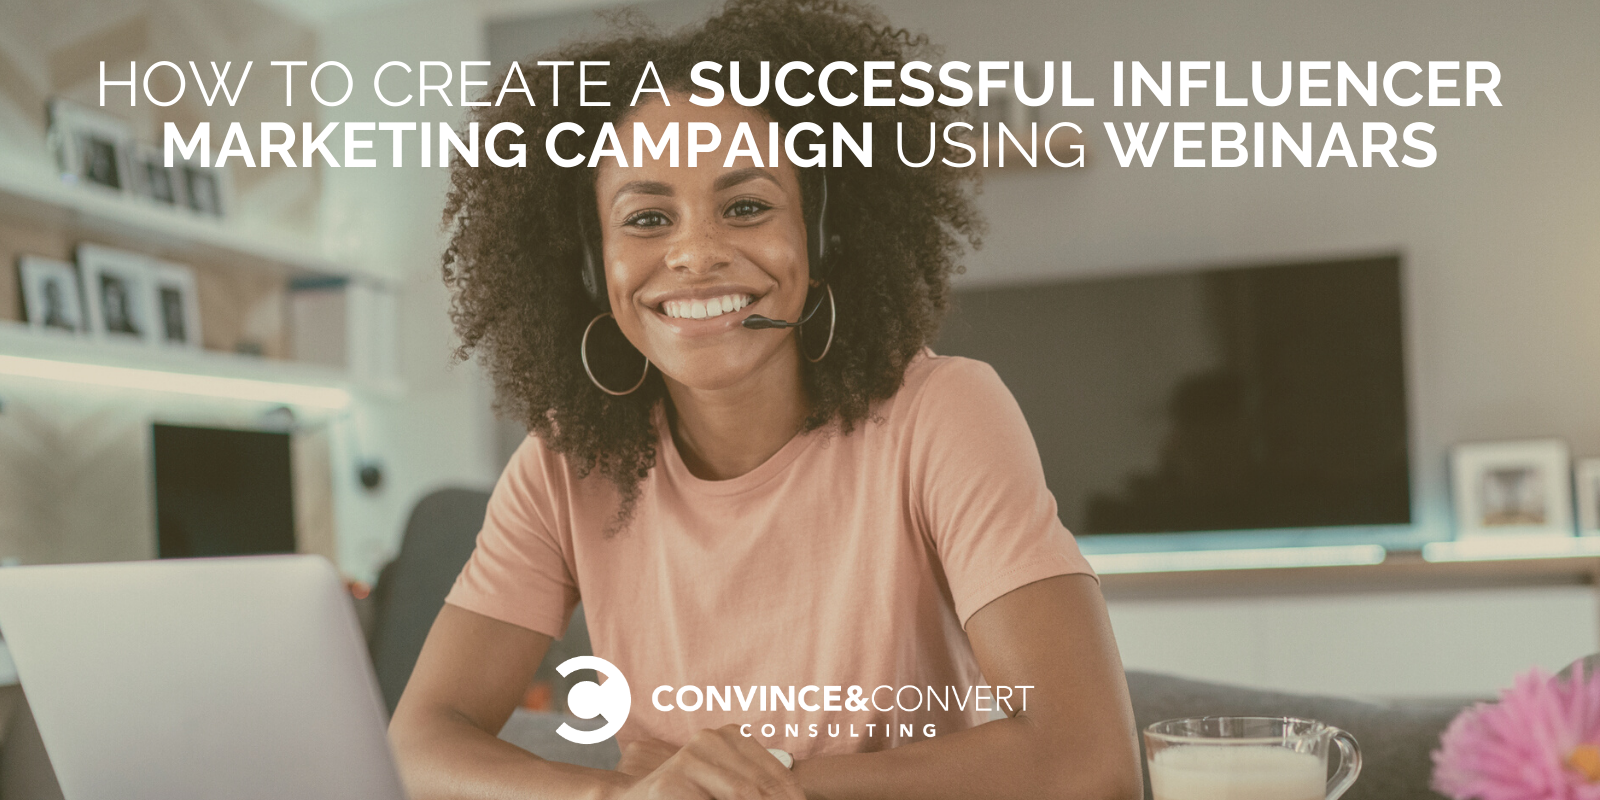 How to Create a Successful Influencer Marketing Campaign Using Webinars – Content Marketing Consulting and Social Media Strategy